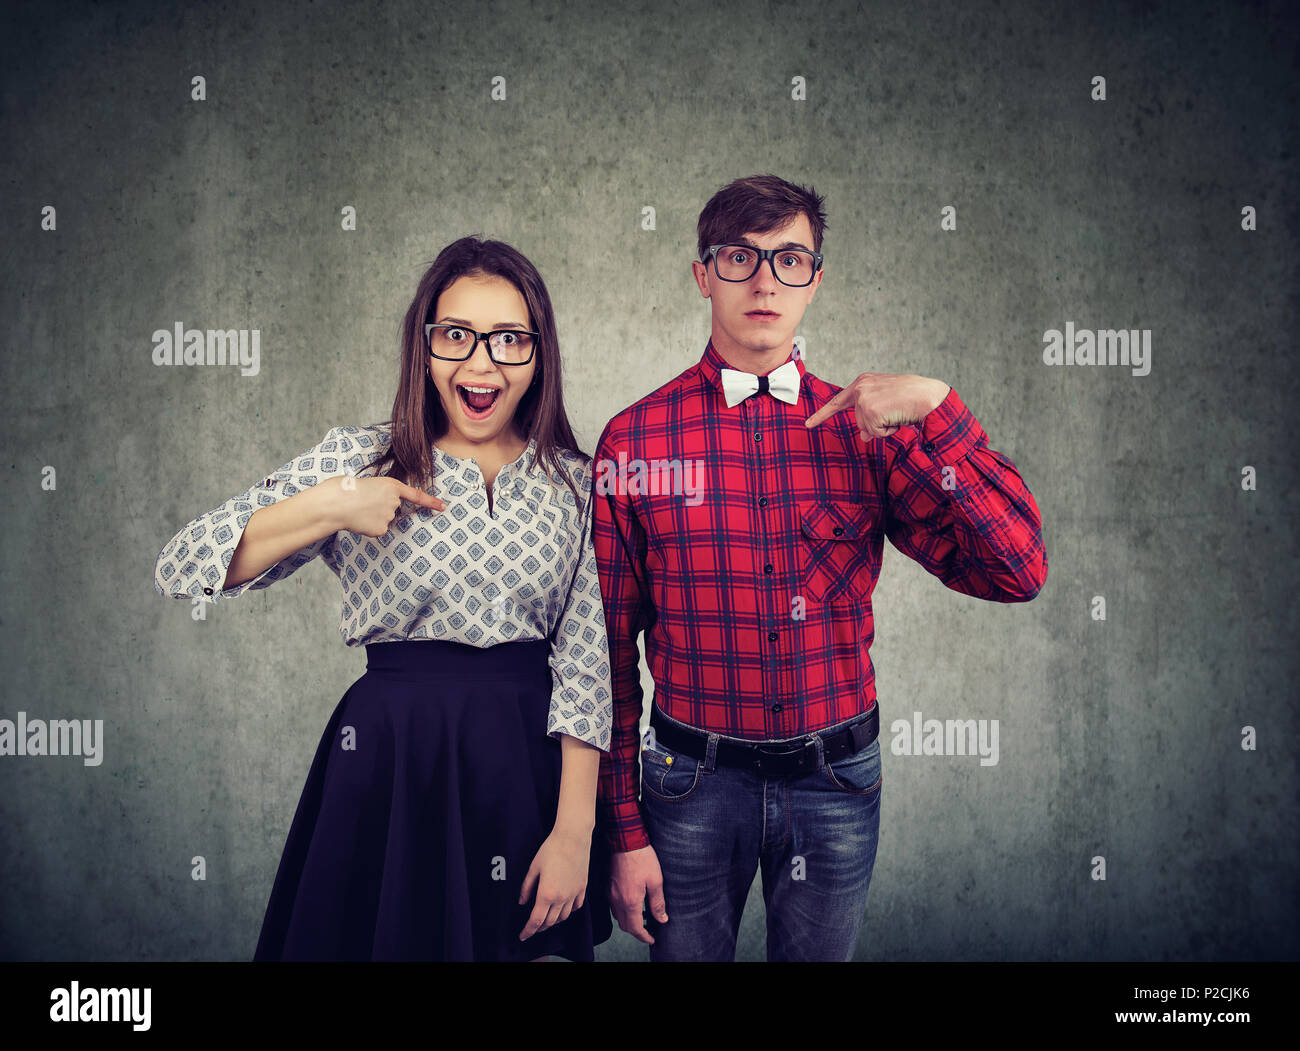 Young stunned man and woman standing together and pointing at themselves being selected - Stock Image